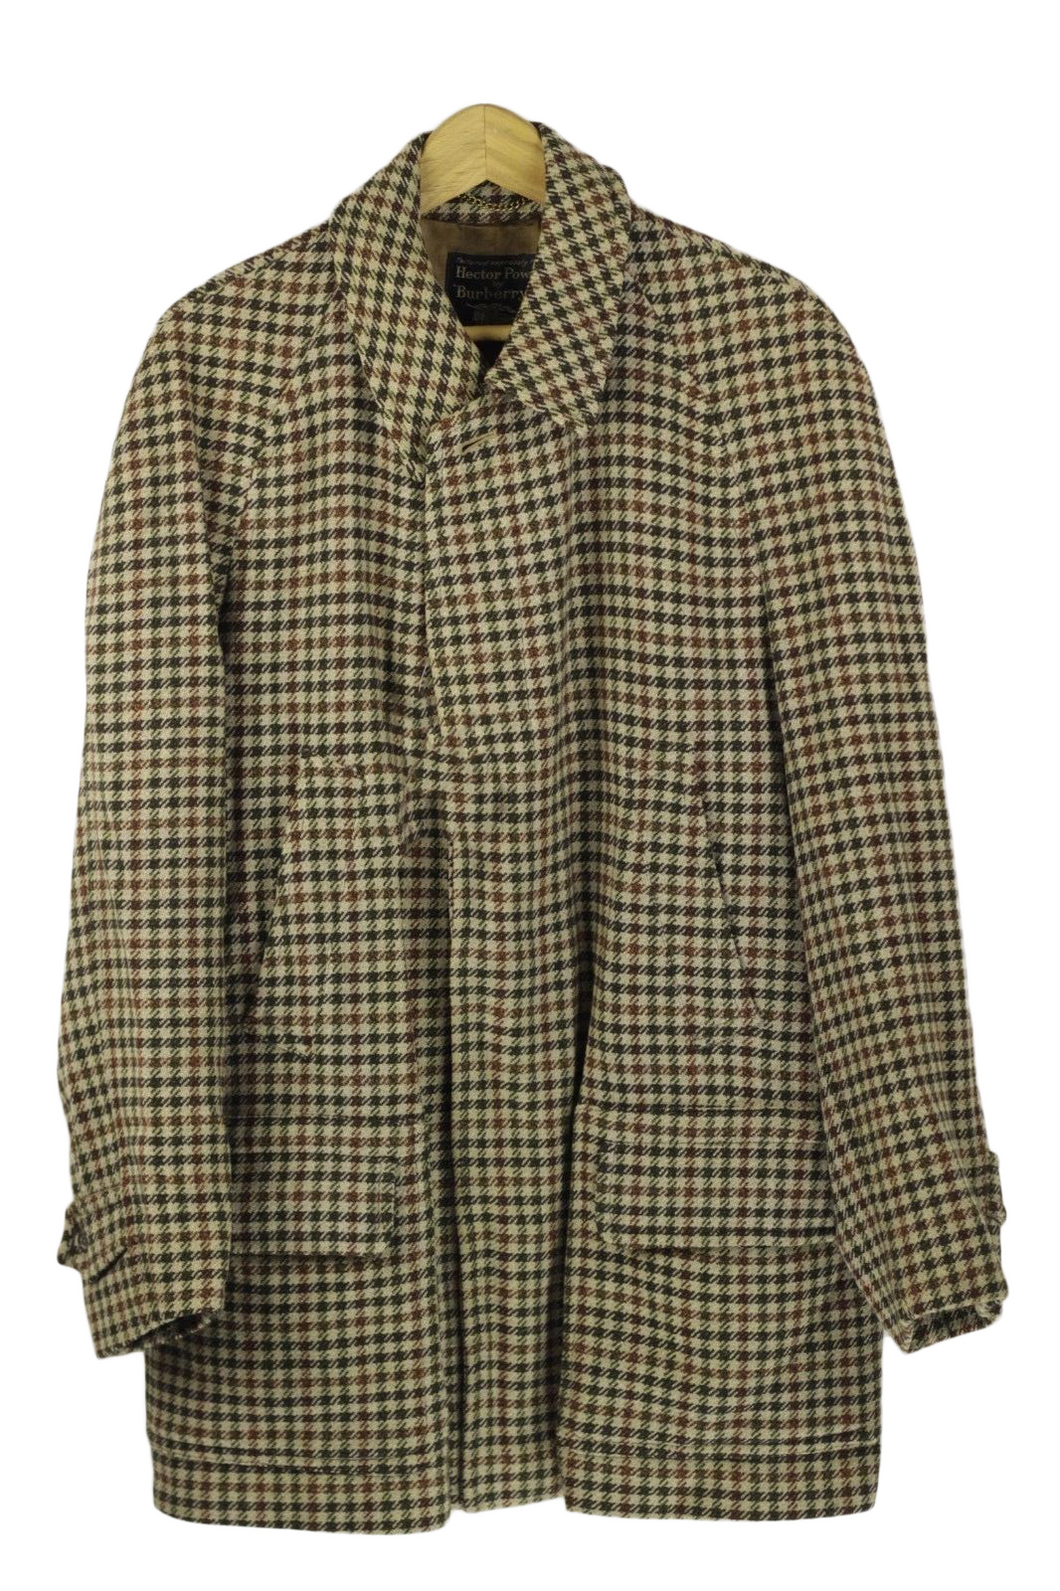 Hector Powe x Burberry Wool Overcoat